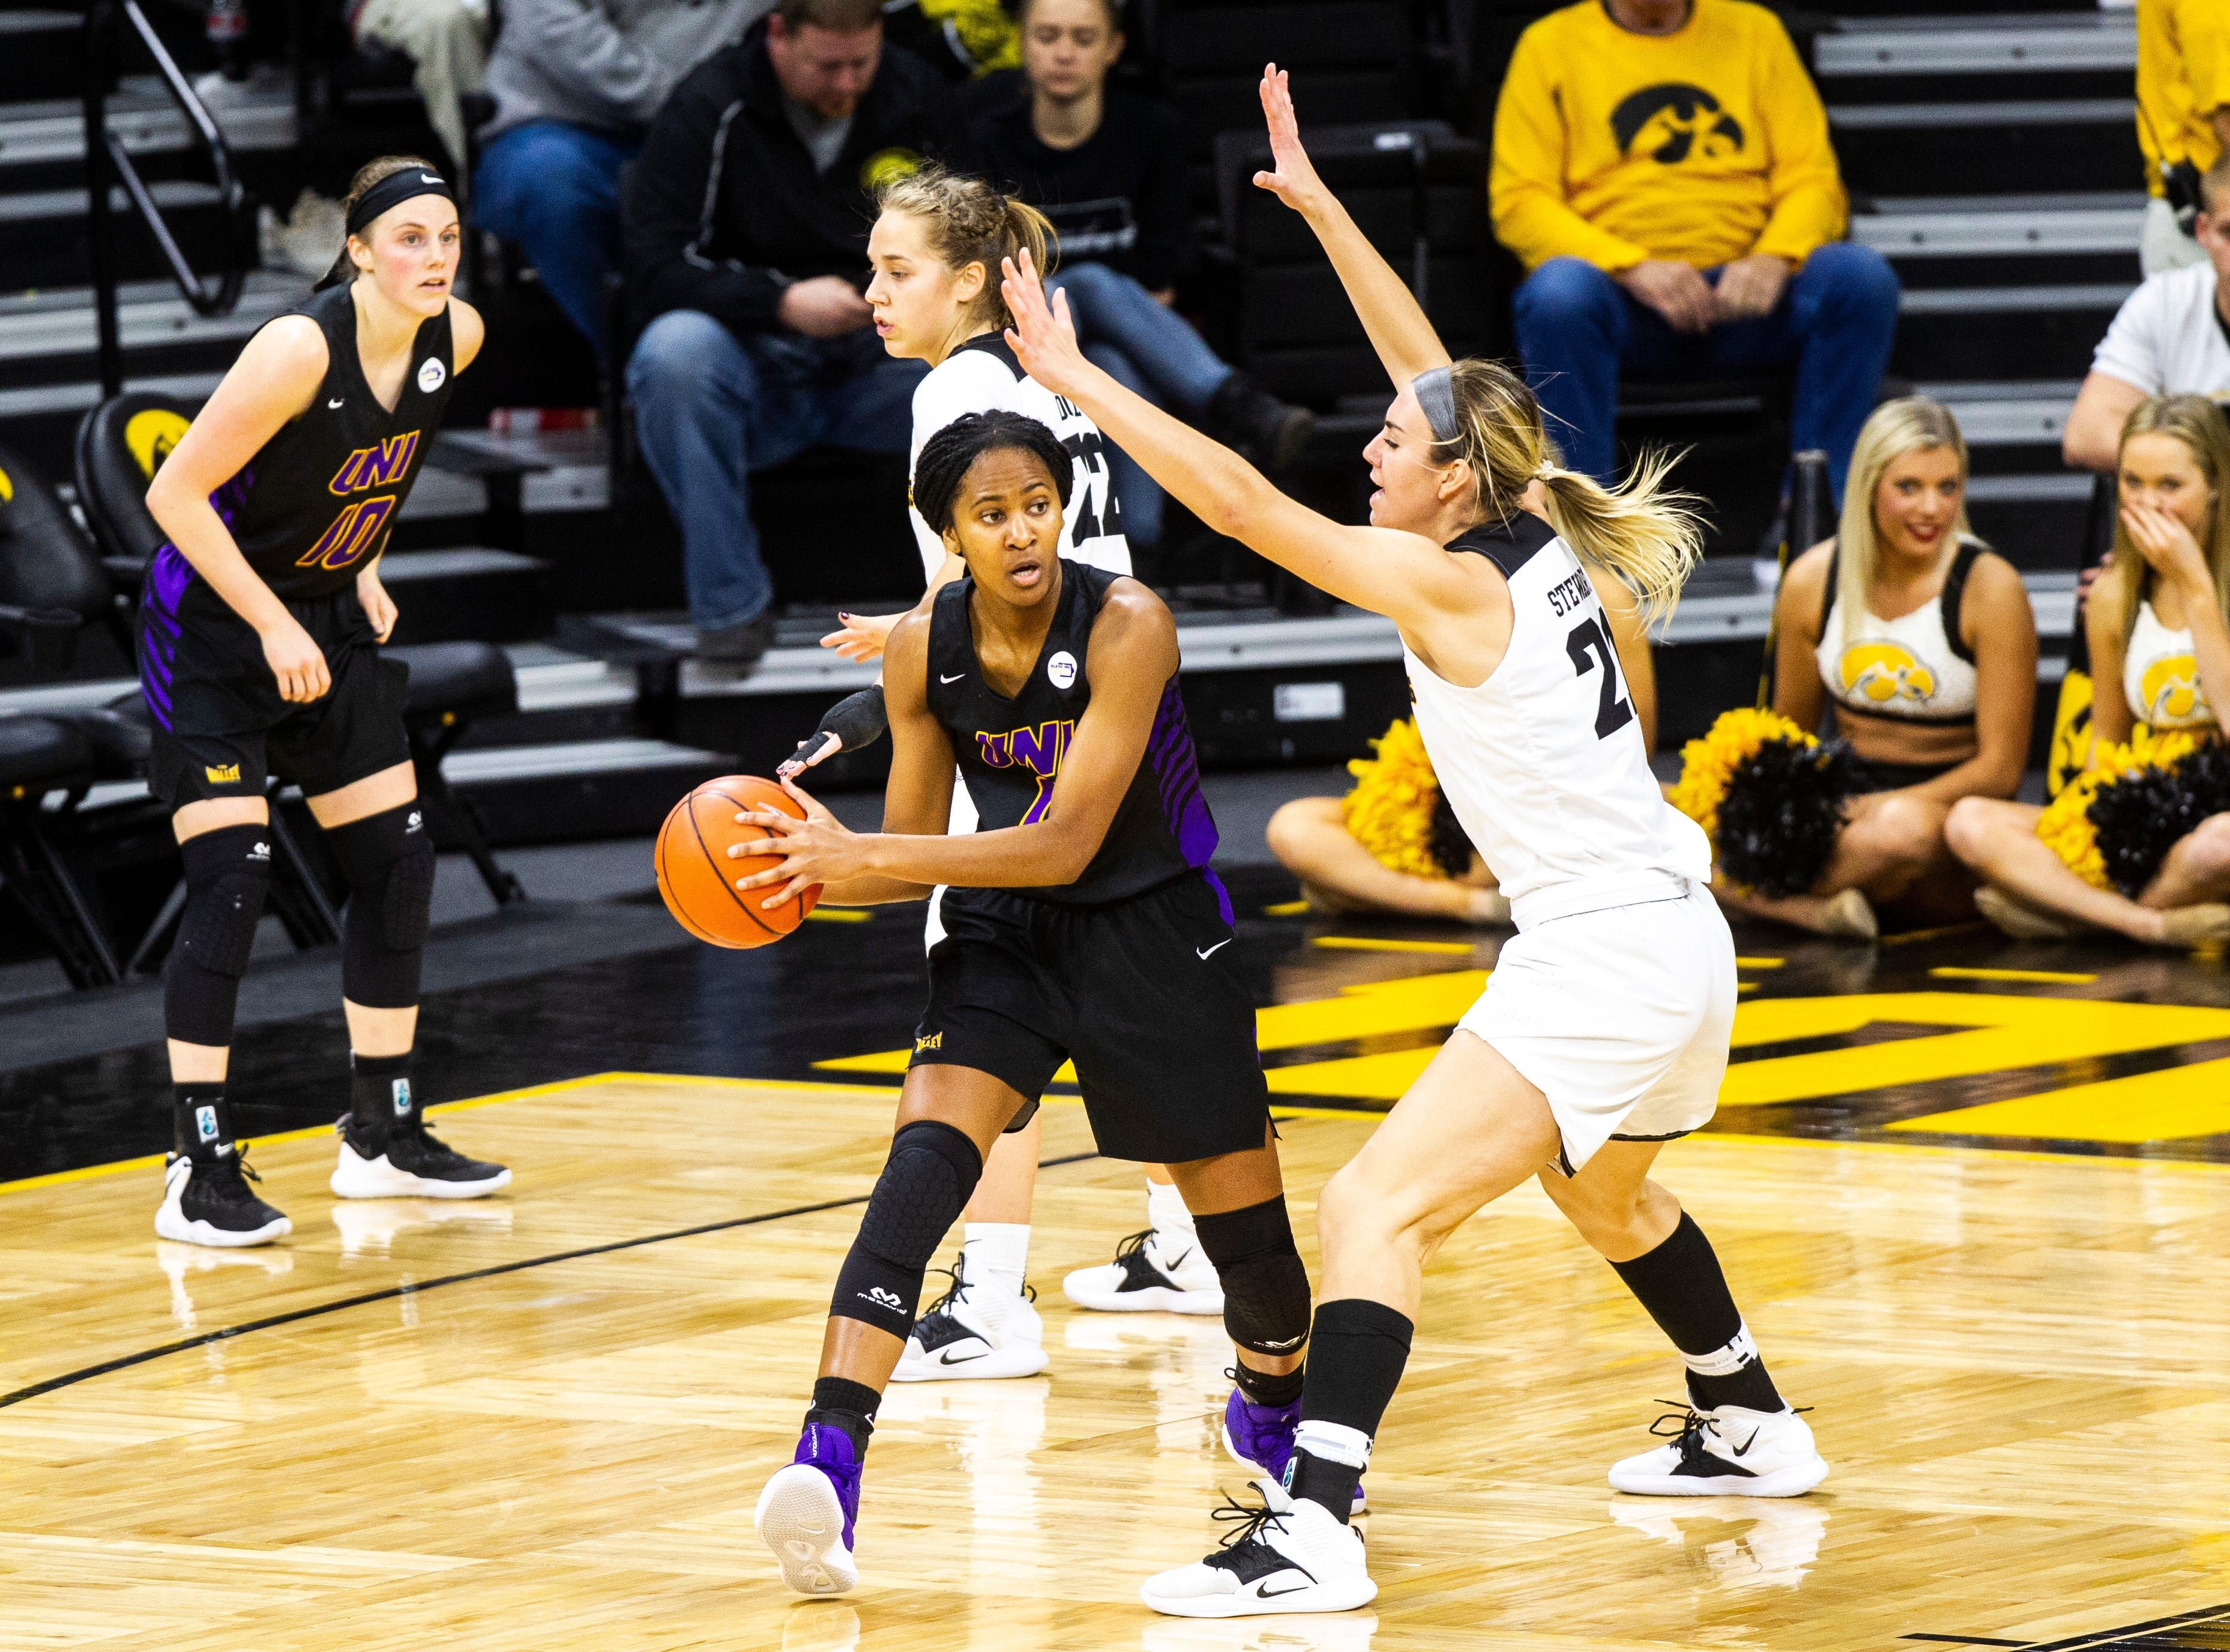 Northern Iowa forward Bre Gunnels (11) passes while being defended by Iowa forward Hannah Stewart (21) during a NCAA women's basketball game on Sunday, Dec. 16, 2018, at Carver-Hawkeye Arena in Iowa City.